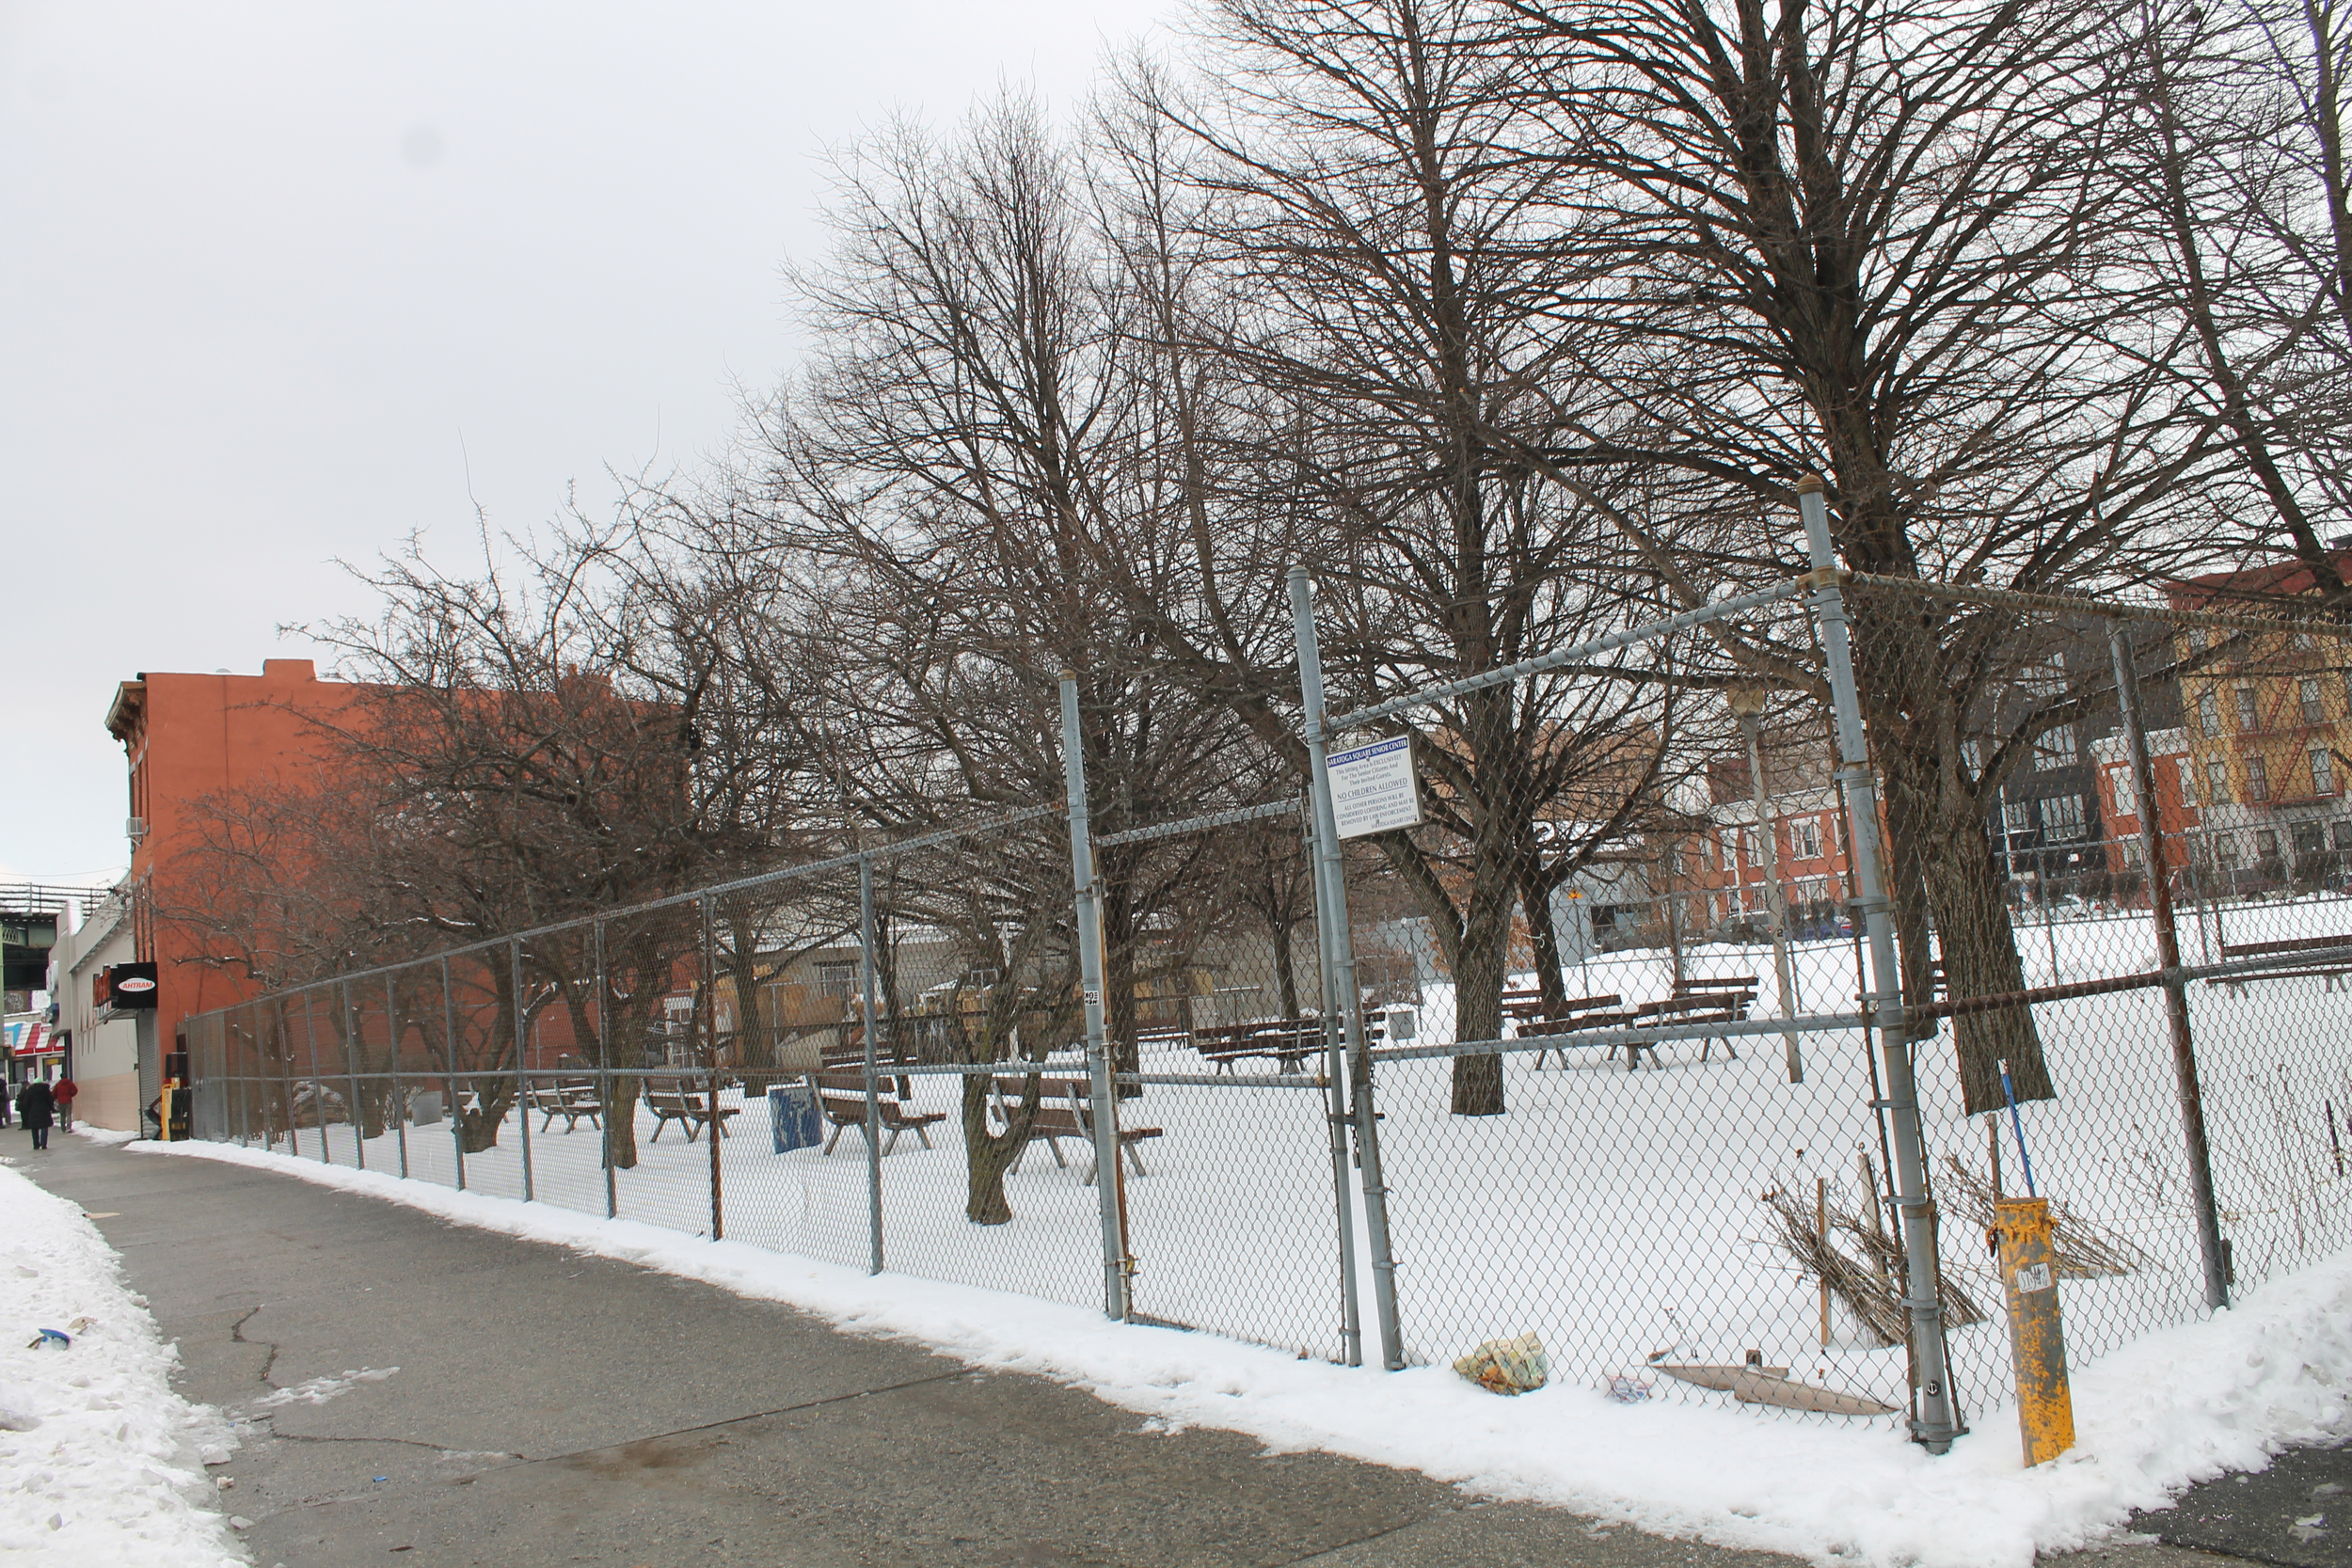 A sitting park in the  Saratoga Square Section 8 housing development in Brooklyn, which  NYCHA  sold to a consortium of developers. Photographed here in March 2015, this open space can be taken away from residents and exploited for new construction by the consortium of developers, according to the transactions agreements approved by the de Blasio administration. Source : Louis Flores